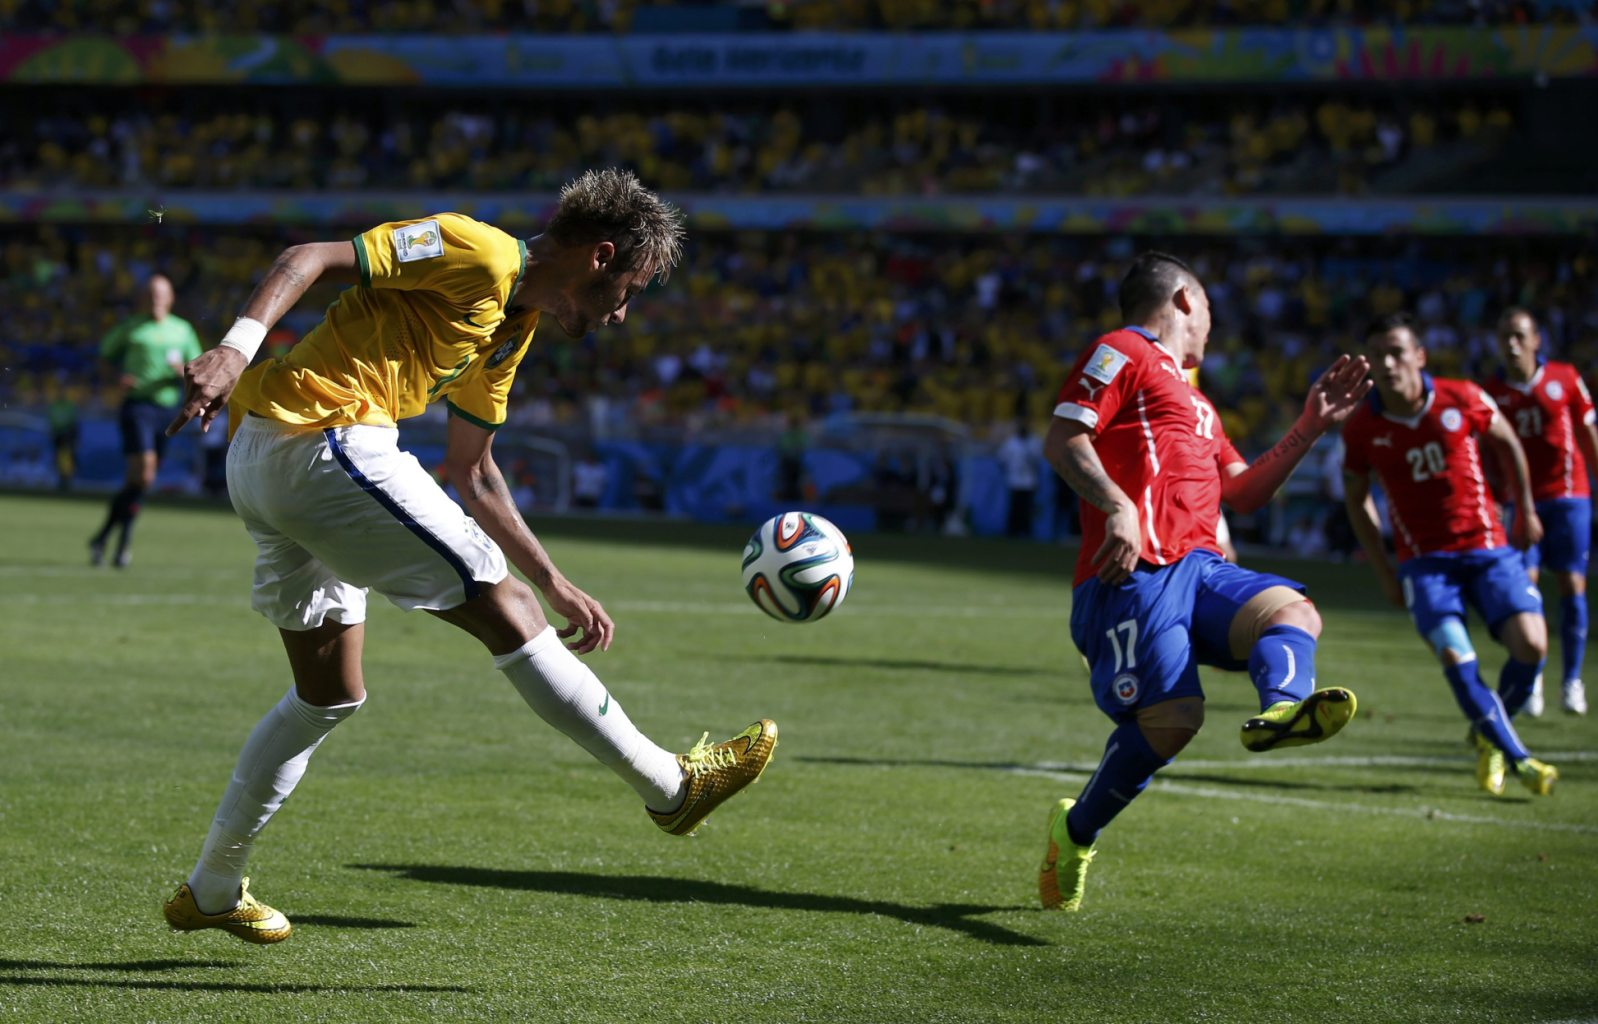 Neymar crossing the ball, in Brazil vs Chile at the FIFA World Cup 2014